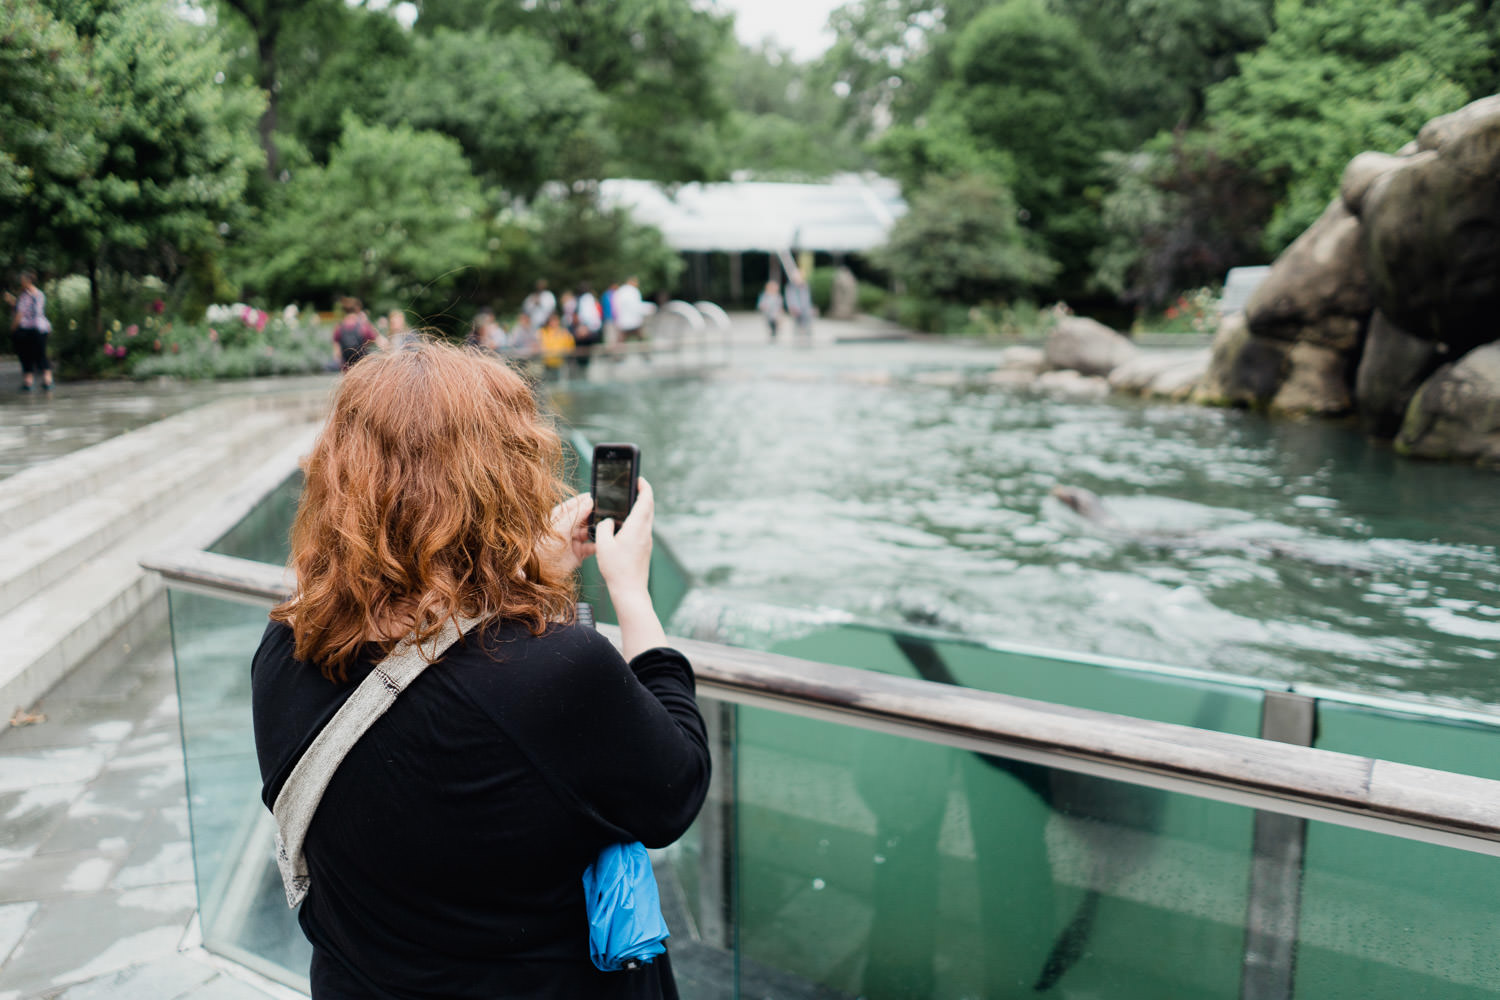 A woman watches the sea lions at the Central Park Zoo.